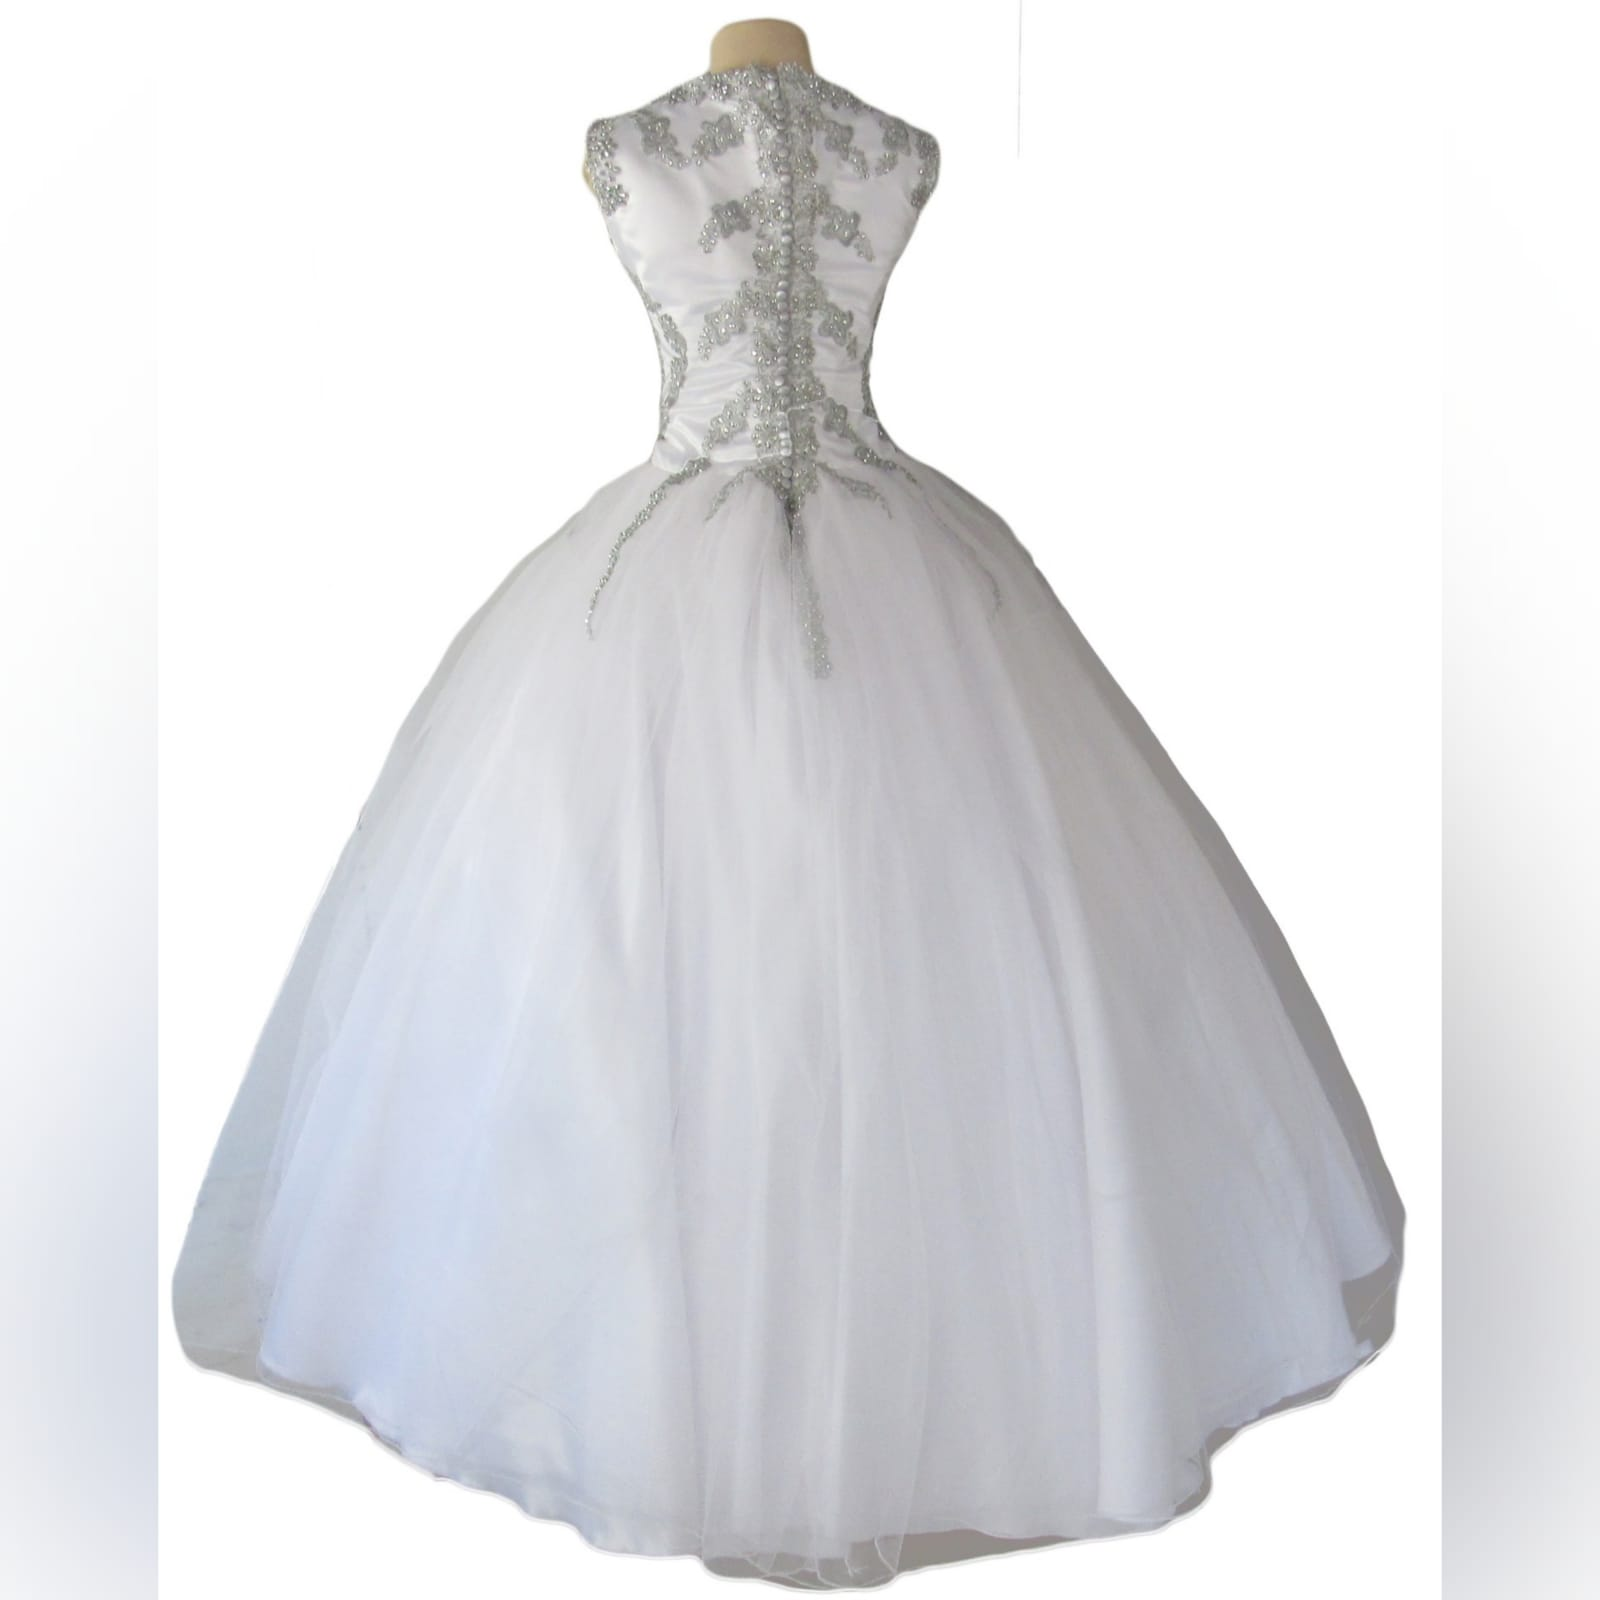 White & silver ball gown wedding dress 10 white & silver ballgown wedding dress. Bodice detailed with silver detail and beads. Falling to the ballgown. Back detailed with silver covered buttons.